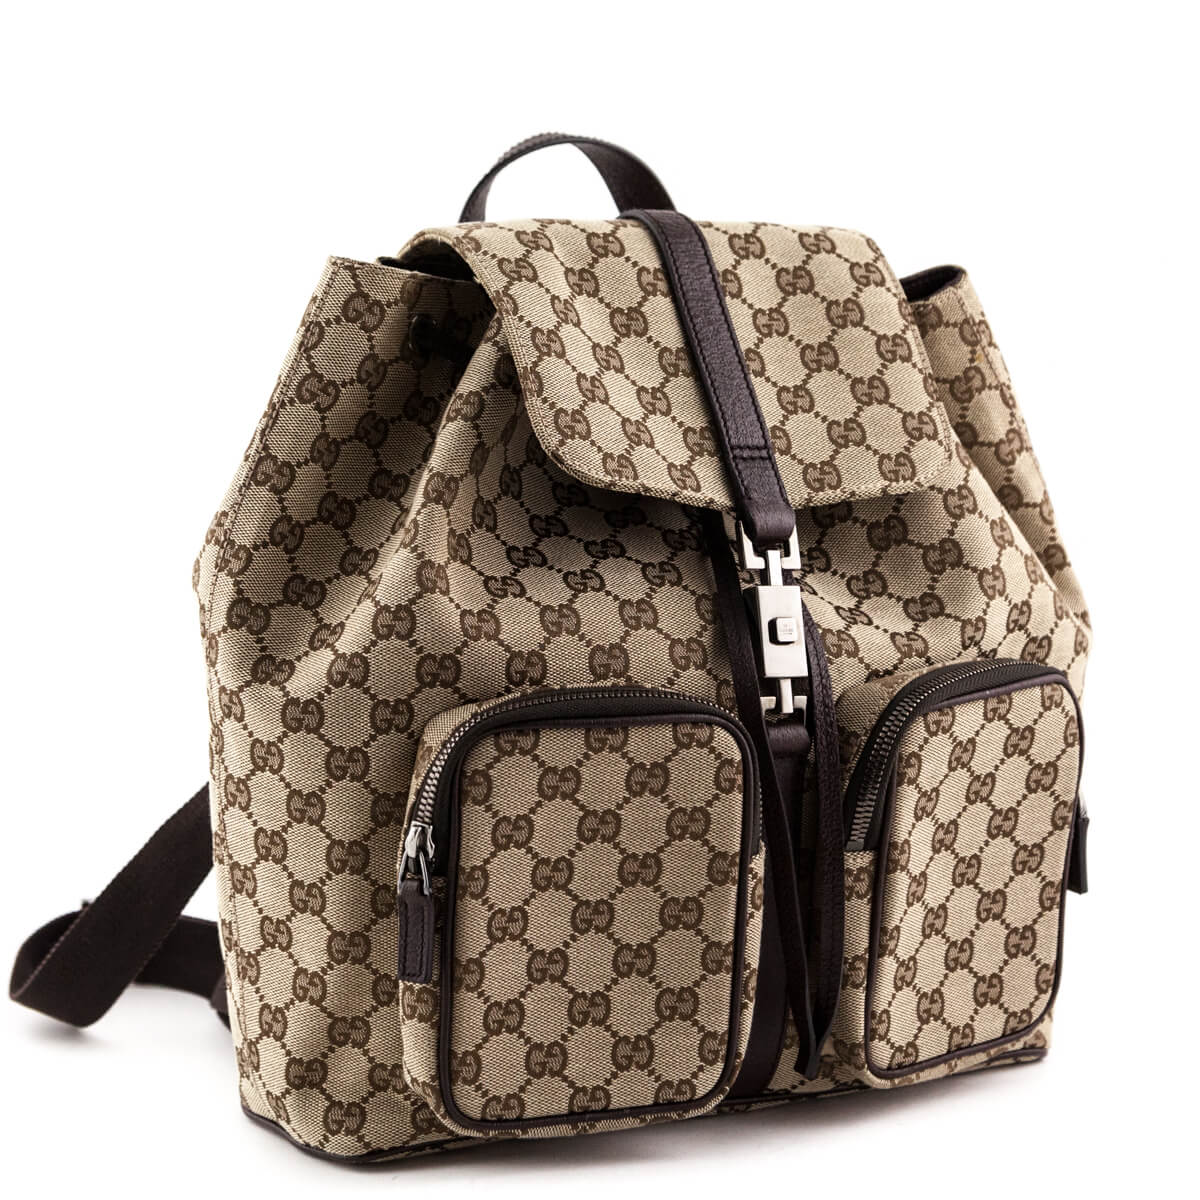 839d4d98b ... Gucci GG Canvas Abbey Backpack - LOVE that BAG - Preowned Authentic  Designer Handbags ...